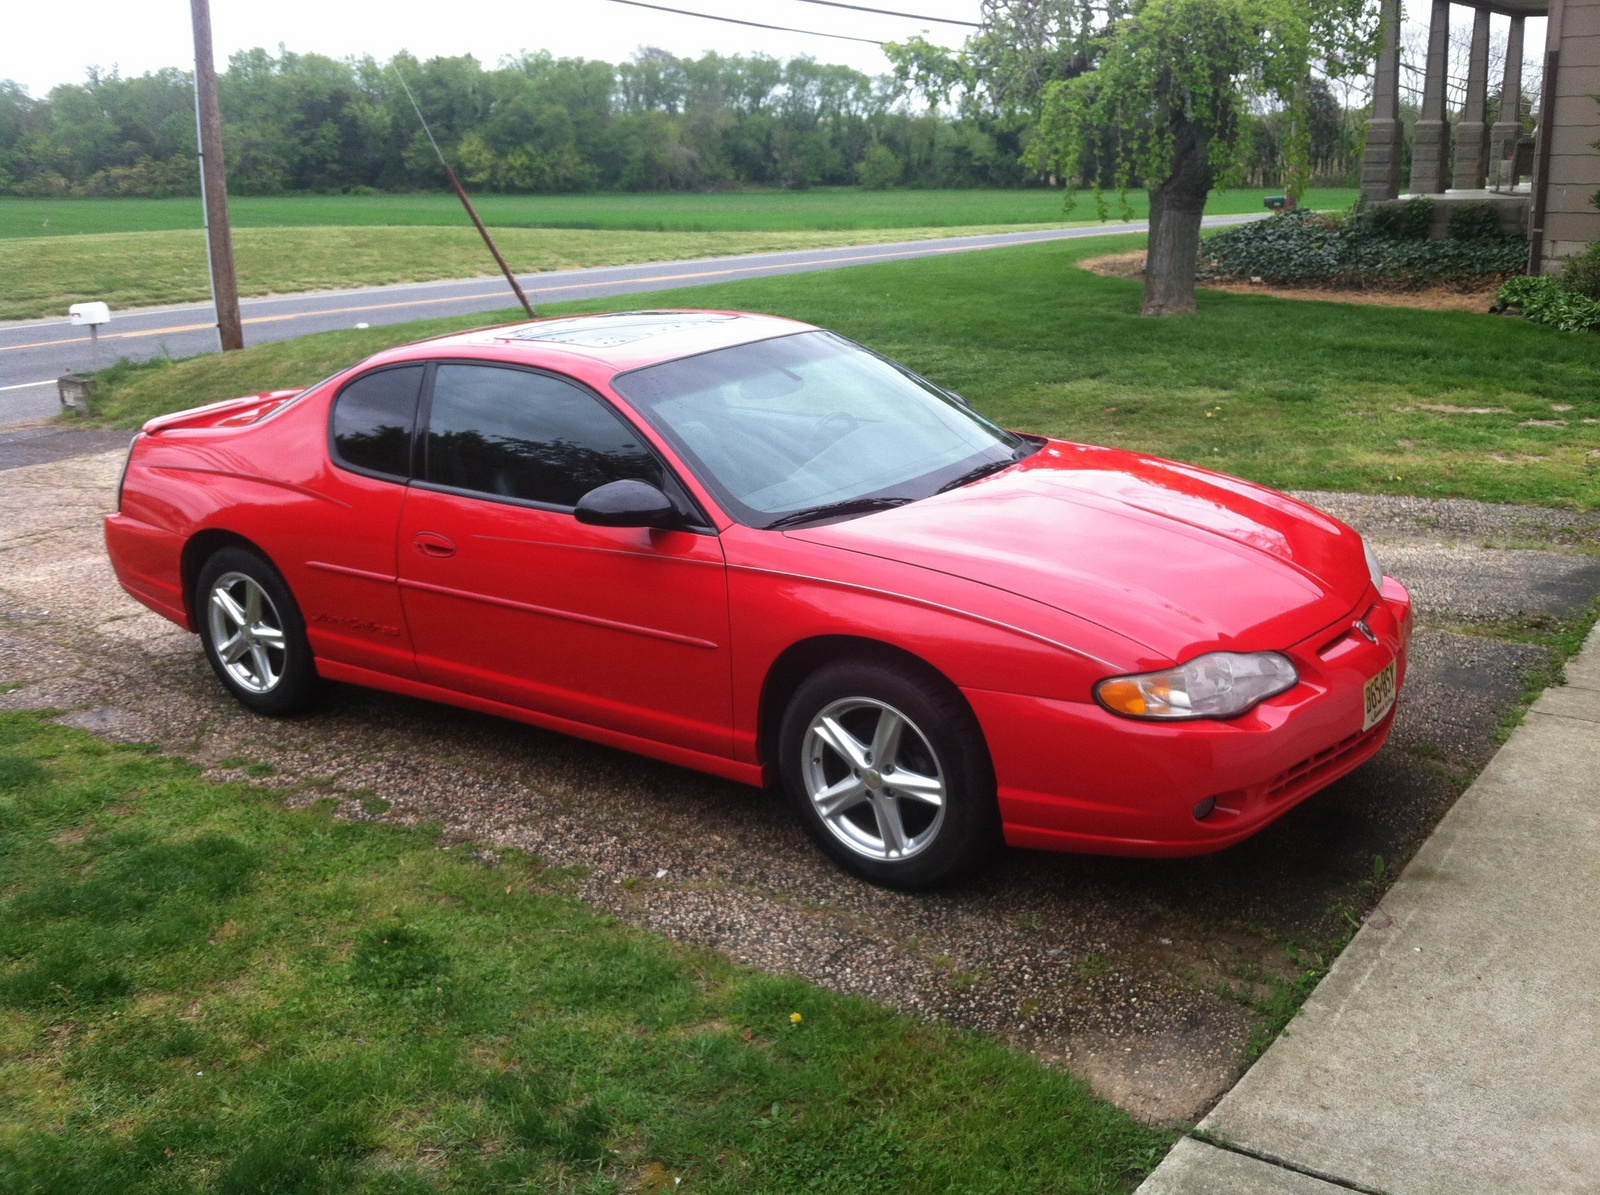 2000 Chevrolet Monte Carlo - Overview